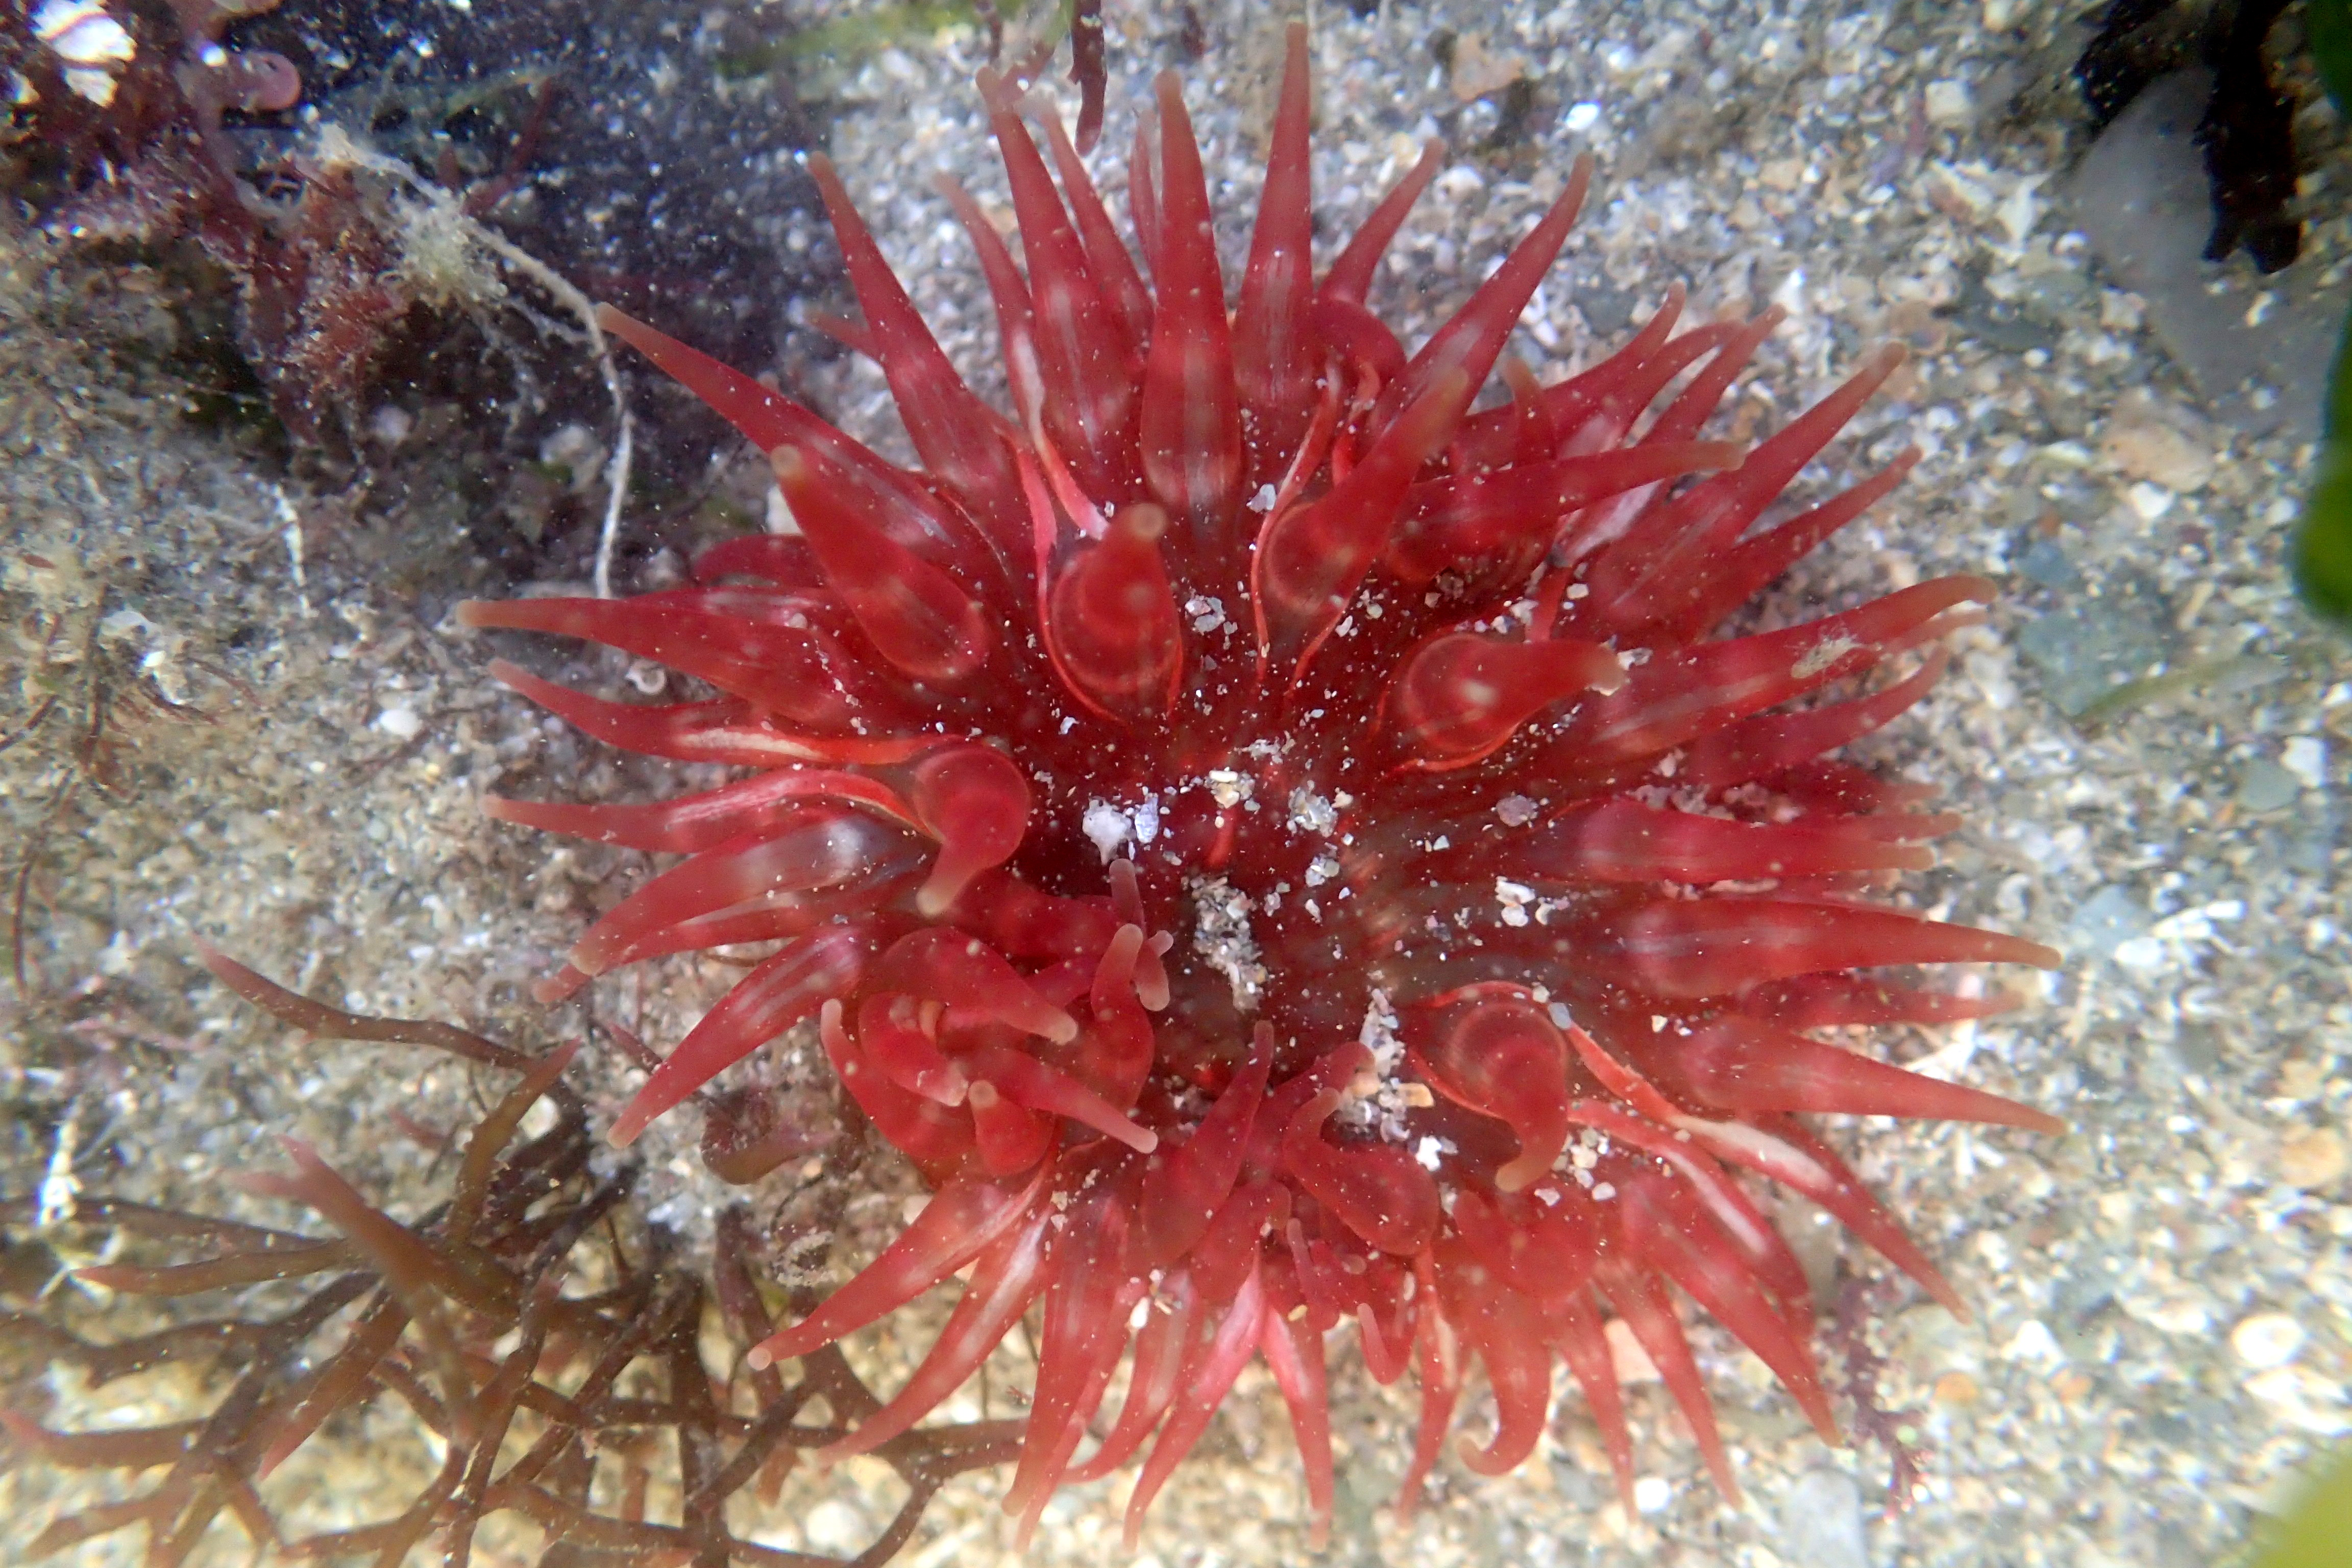 An especially red dahlia anemone buried in the sand.